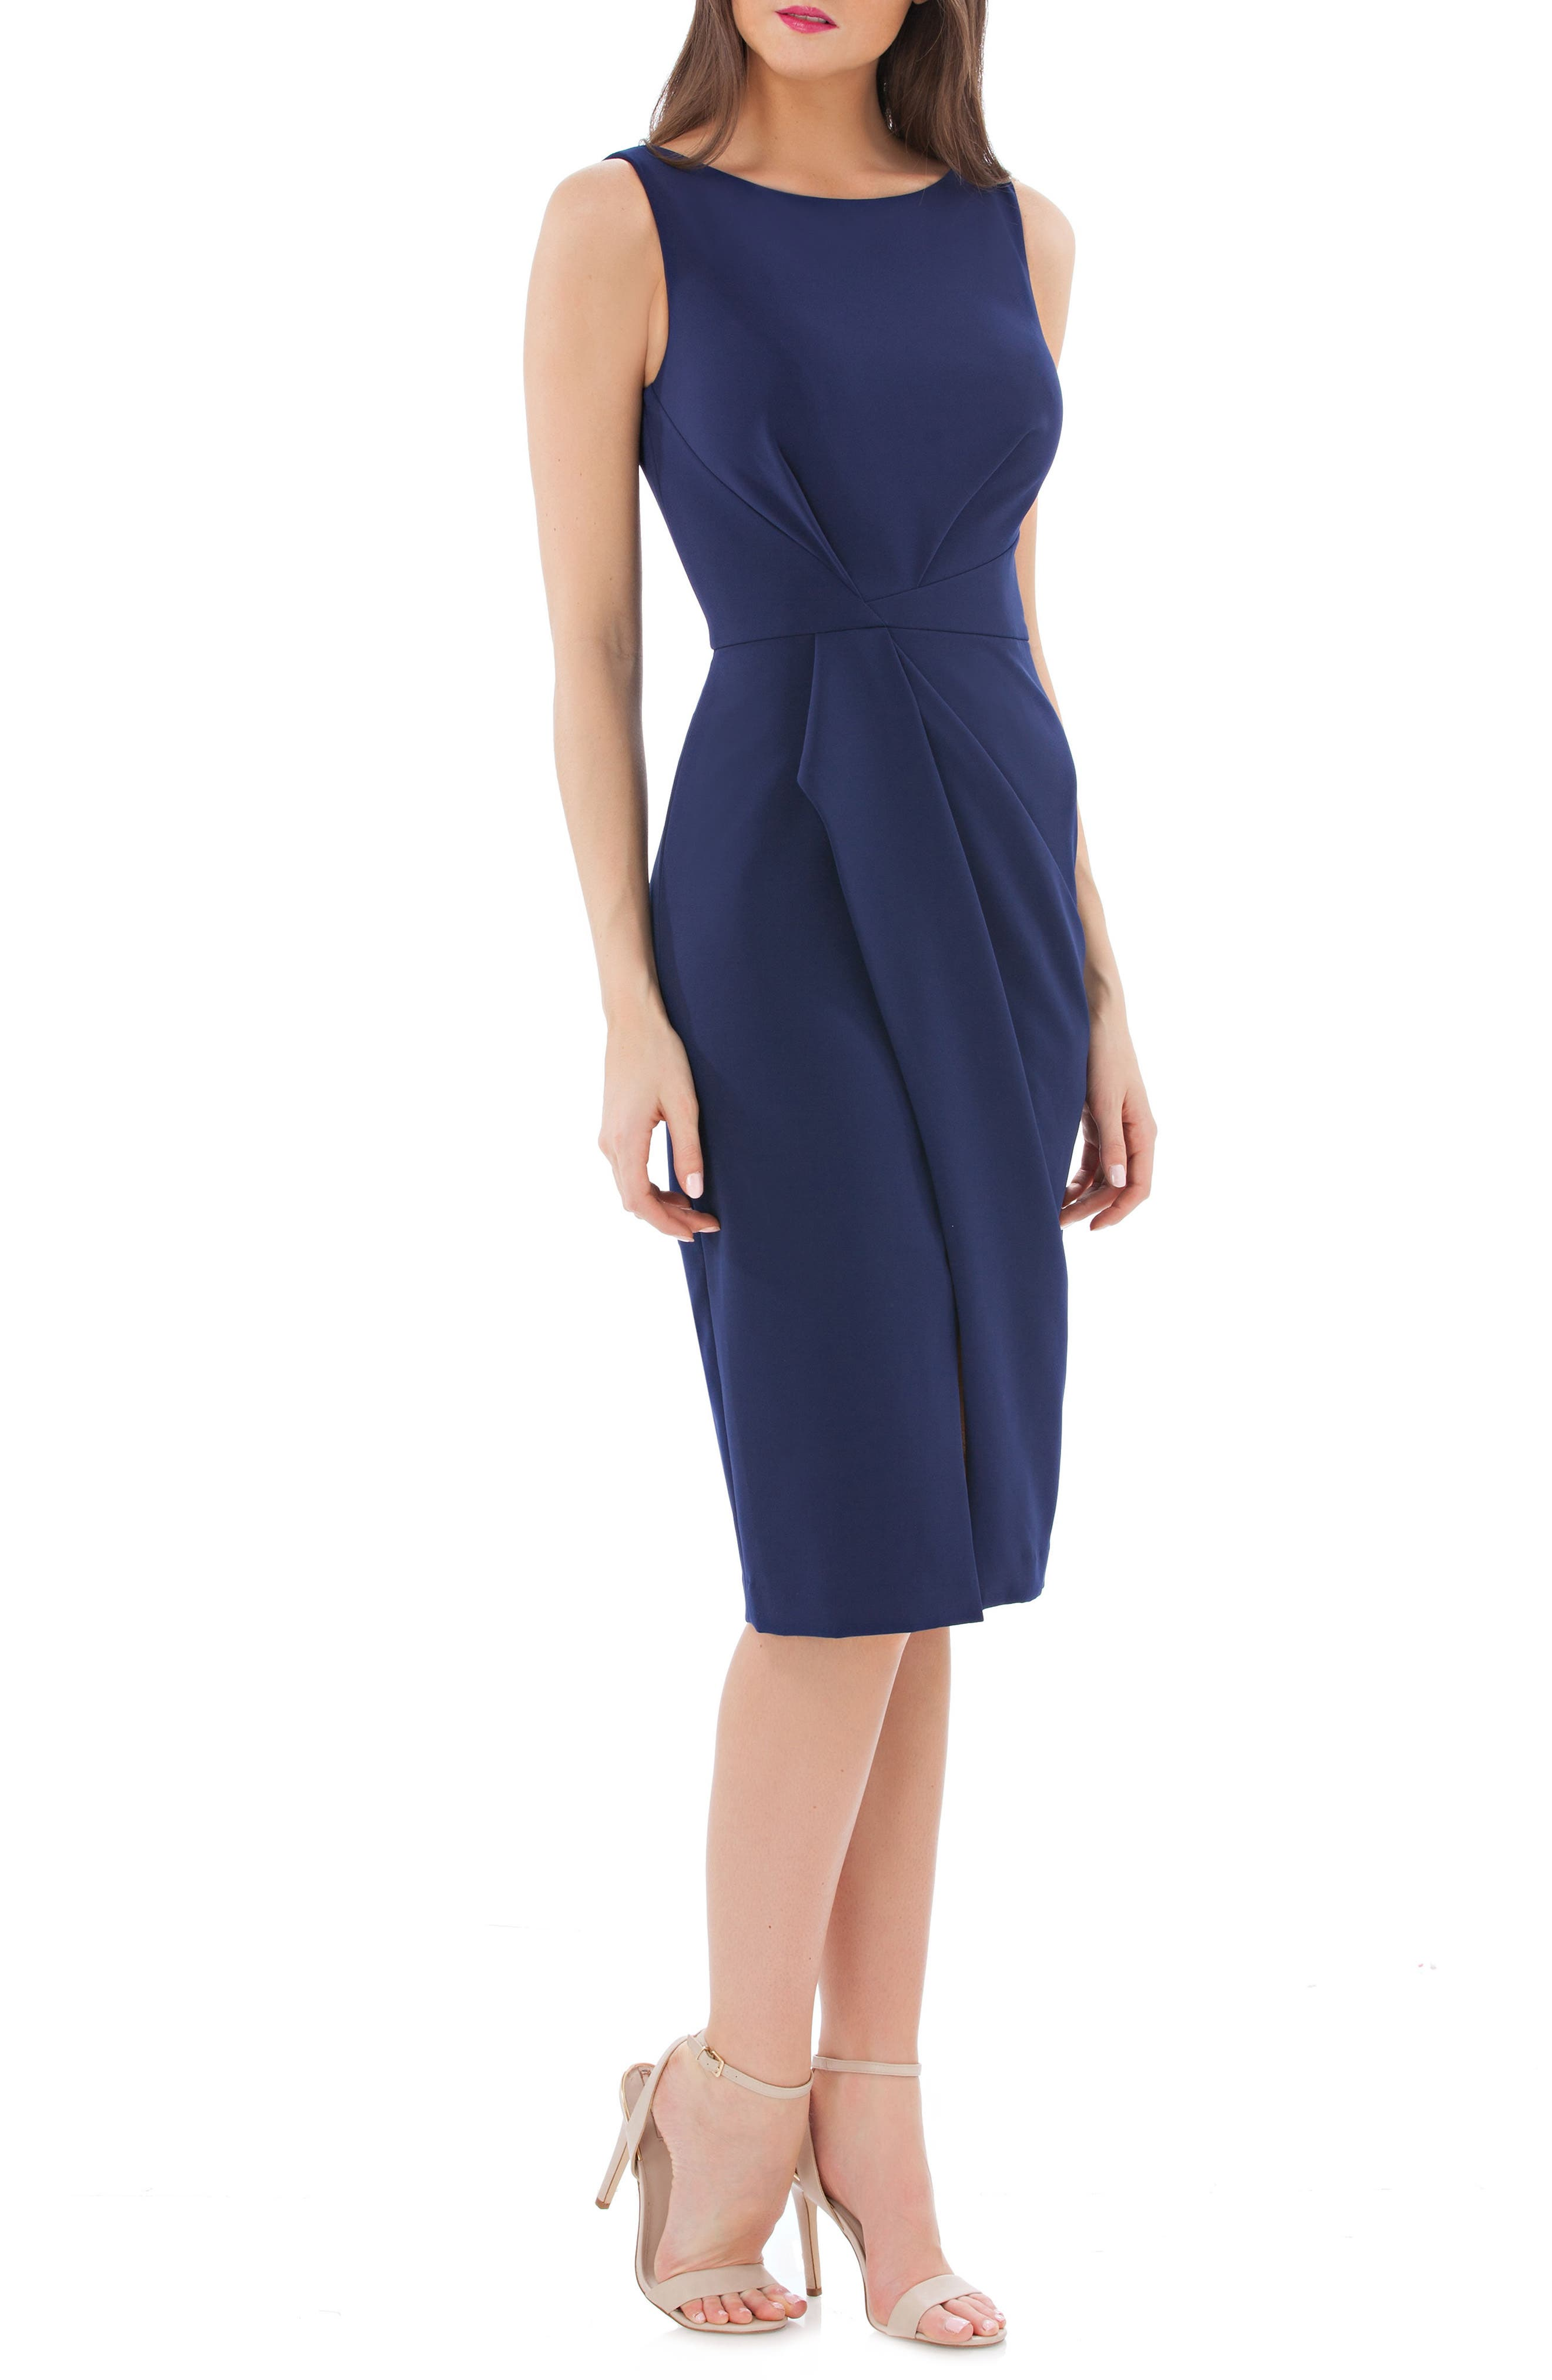 JS COLLECTIONS, Pleated Crepe Cocktail Dress, Main thumbnail 1, color, NAVY